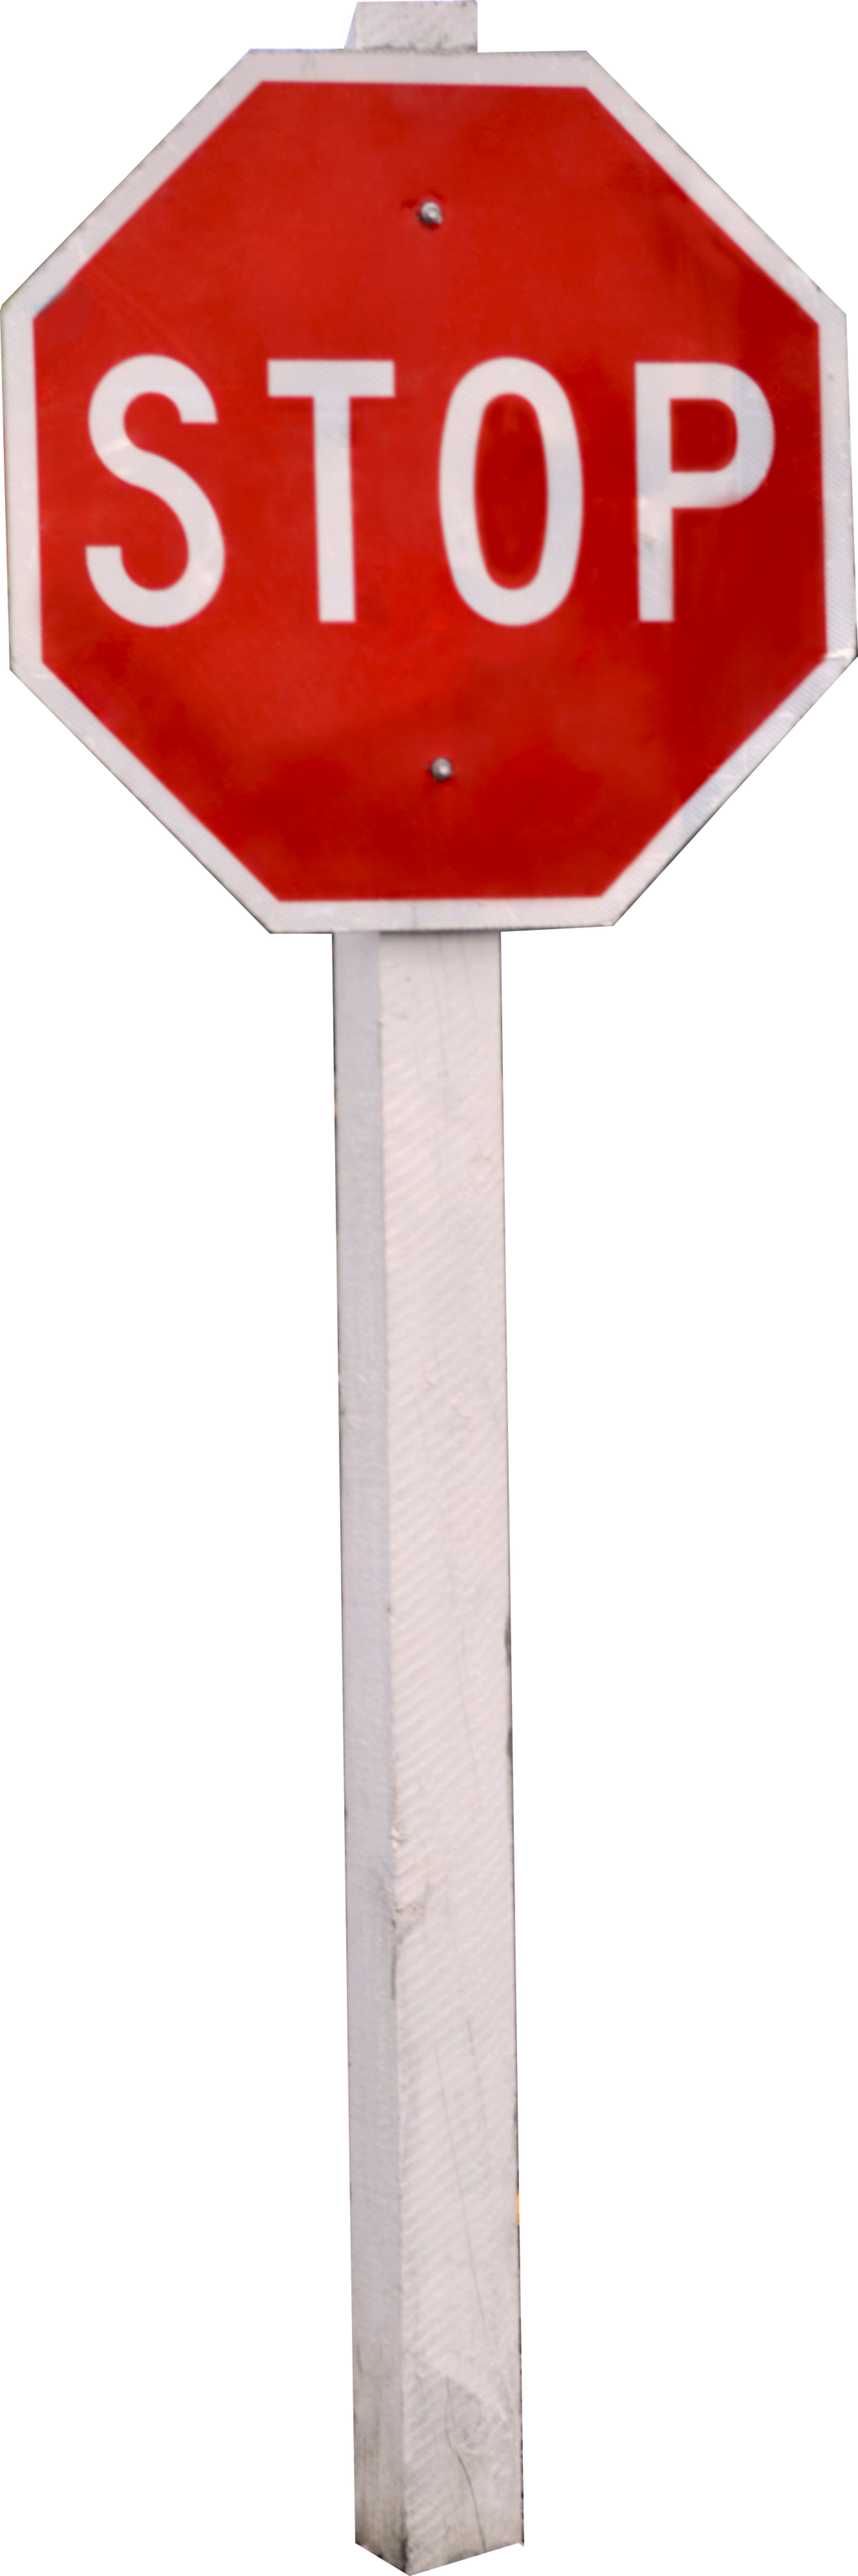 Stop Sign Png image #27230